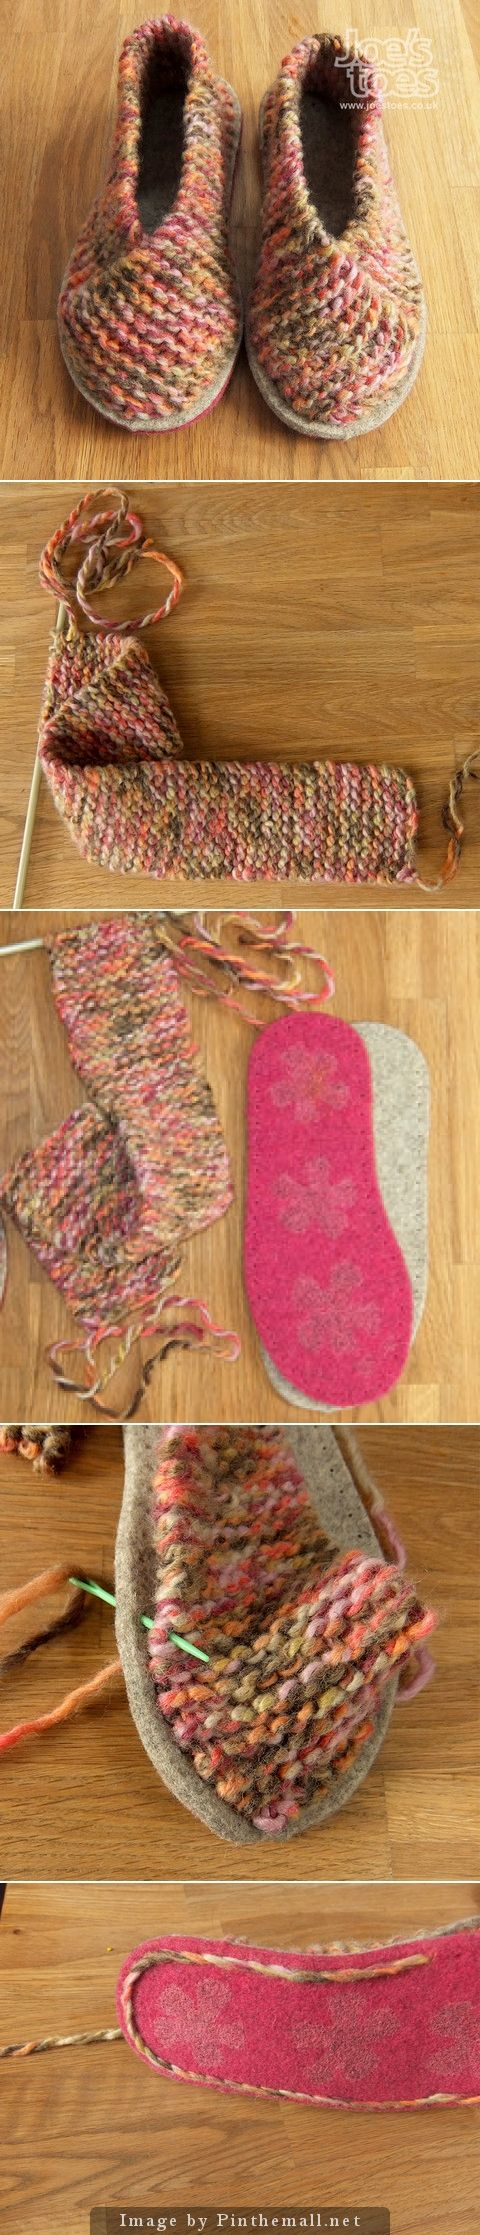 "#Knitting_Tutorial - ""How to make Knitted Garter Stitch Slippers. This looks fast, simple and fun!"" Enjoy from KnittingGuru ** http://www.pinterest.com/knittingguru/knitting-crochet-tutorials/"